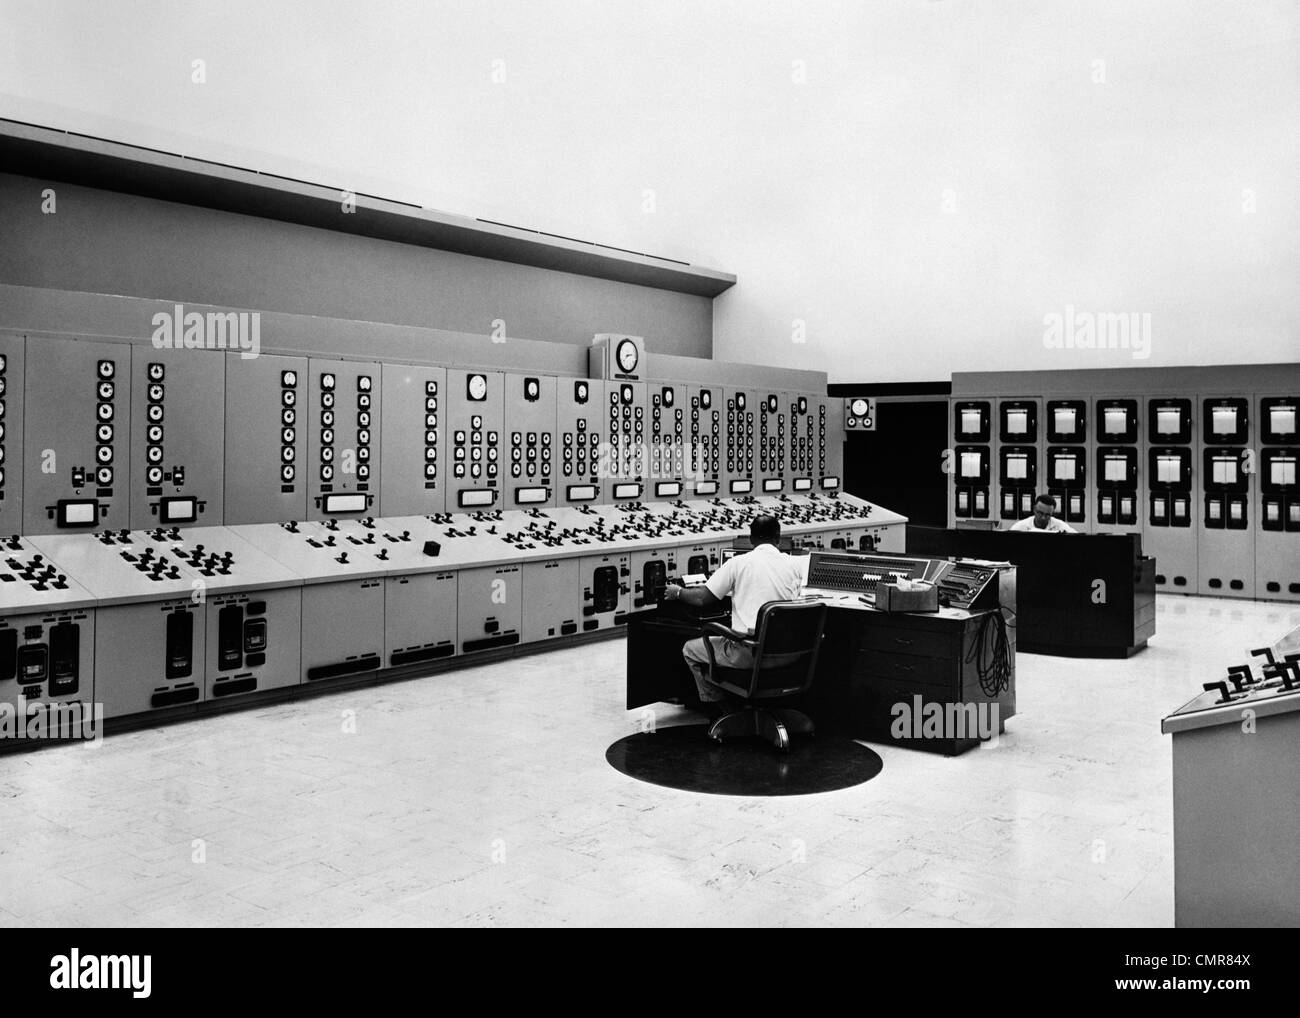 1950s 1960s CONTROL ROOM OF POWERHOUSE OF HYDROELECTRIC GENERATING DAM - Stock Image